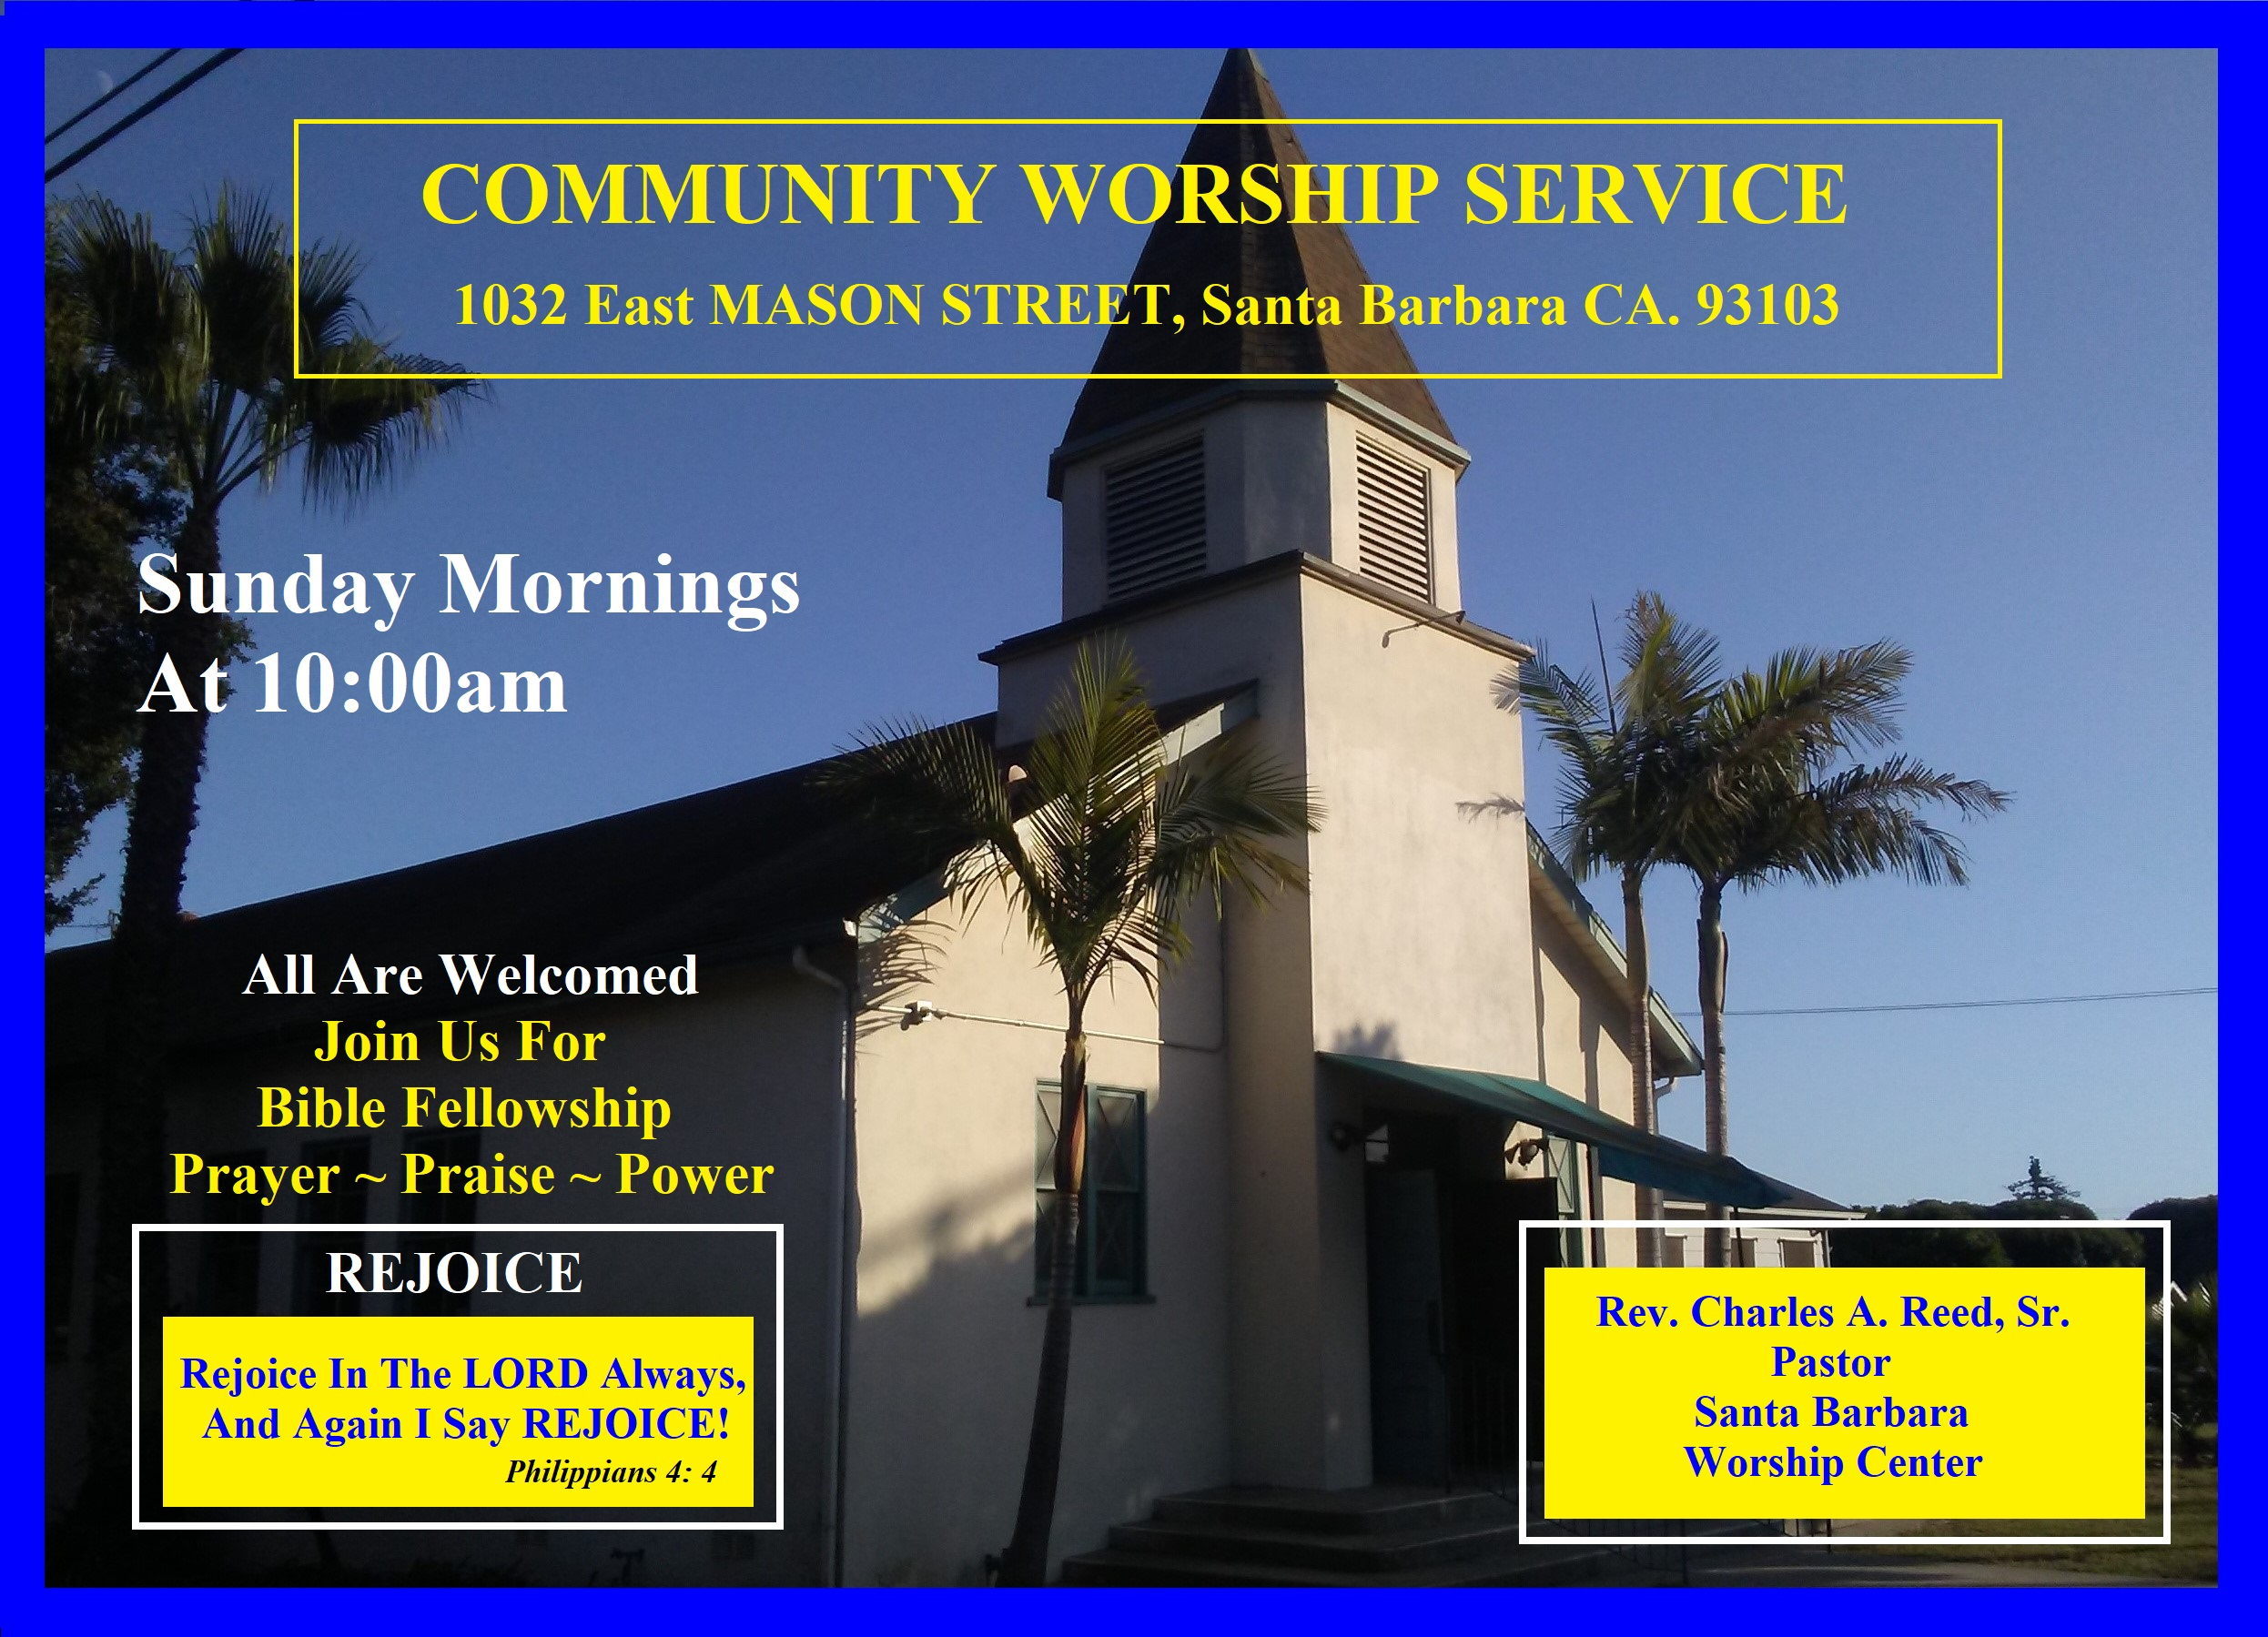 Community Worship and Fellowship